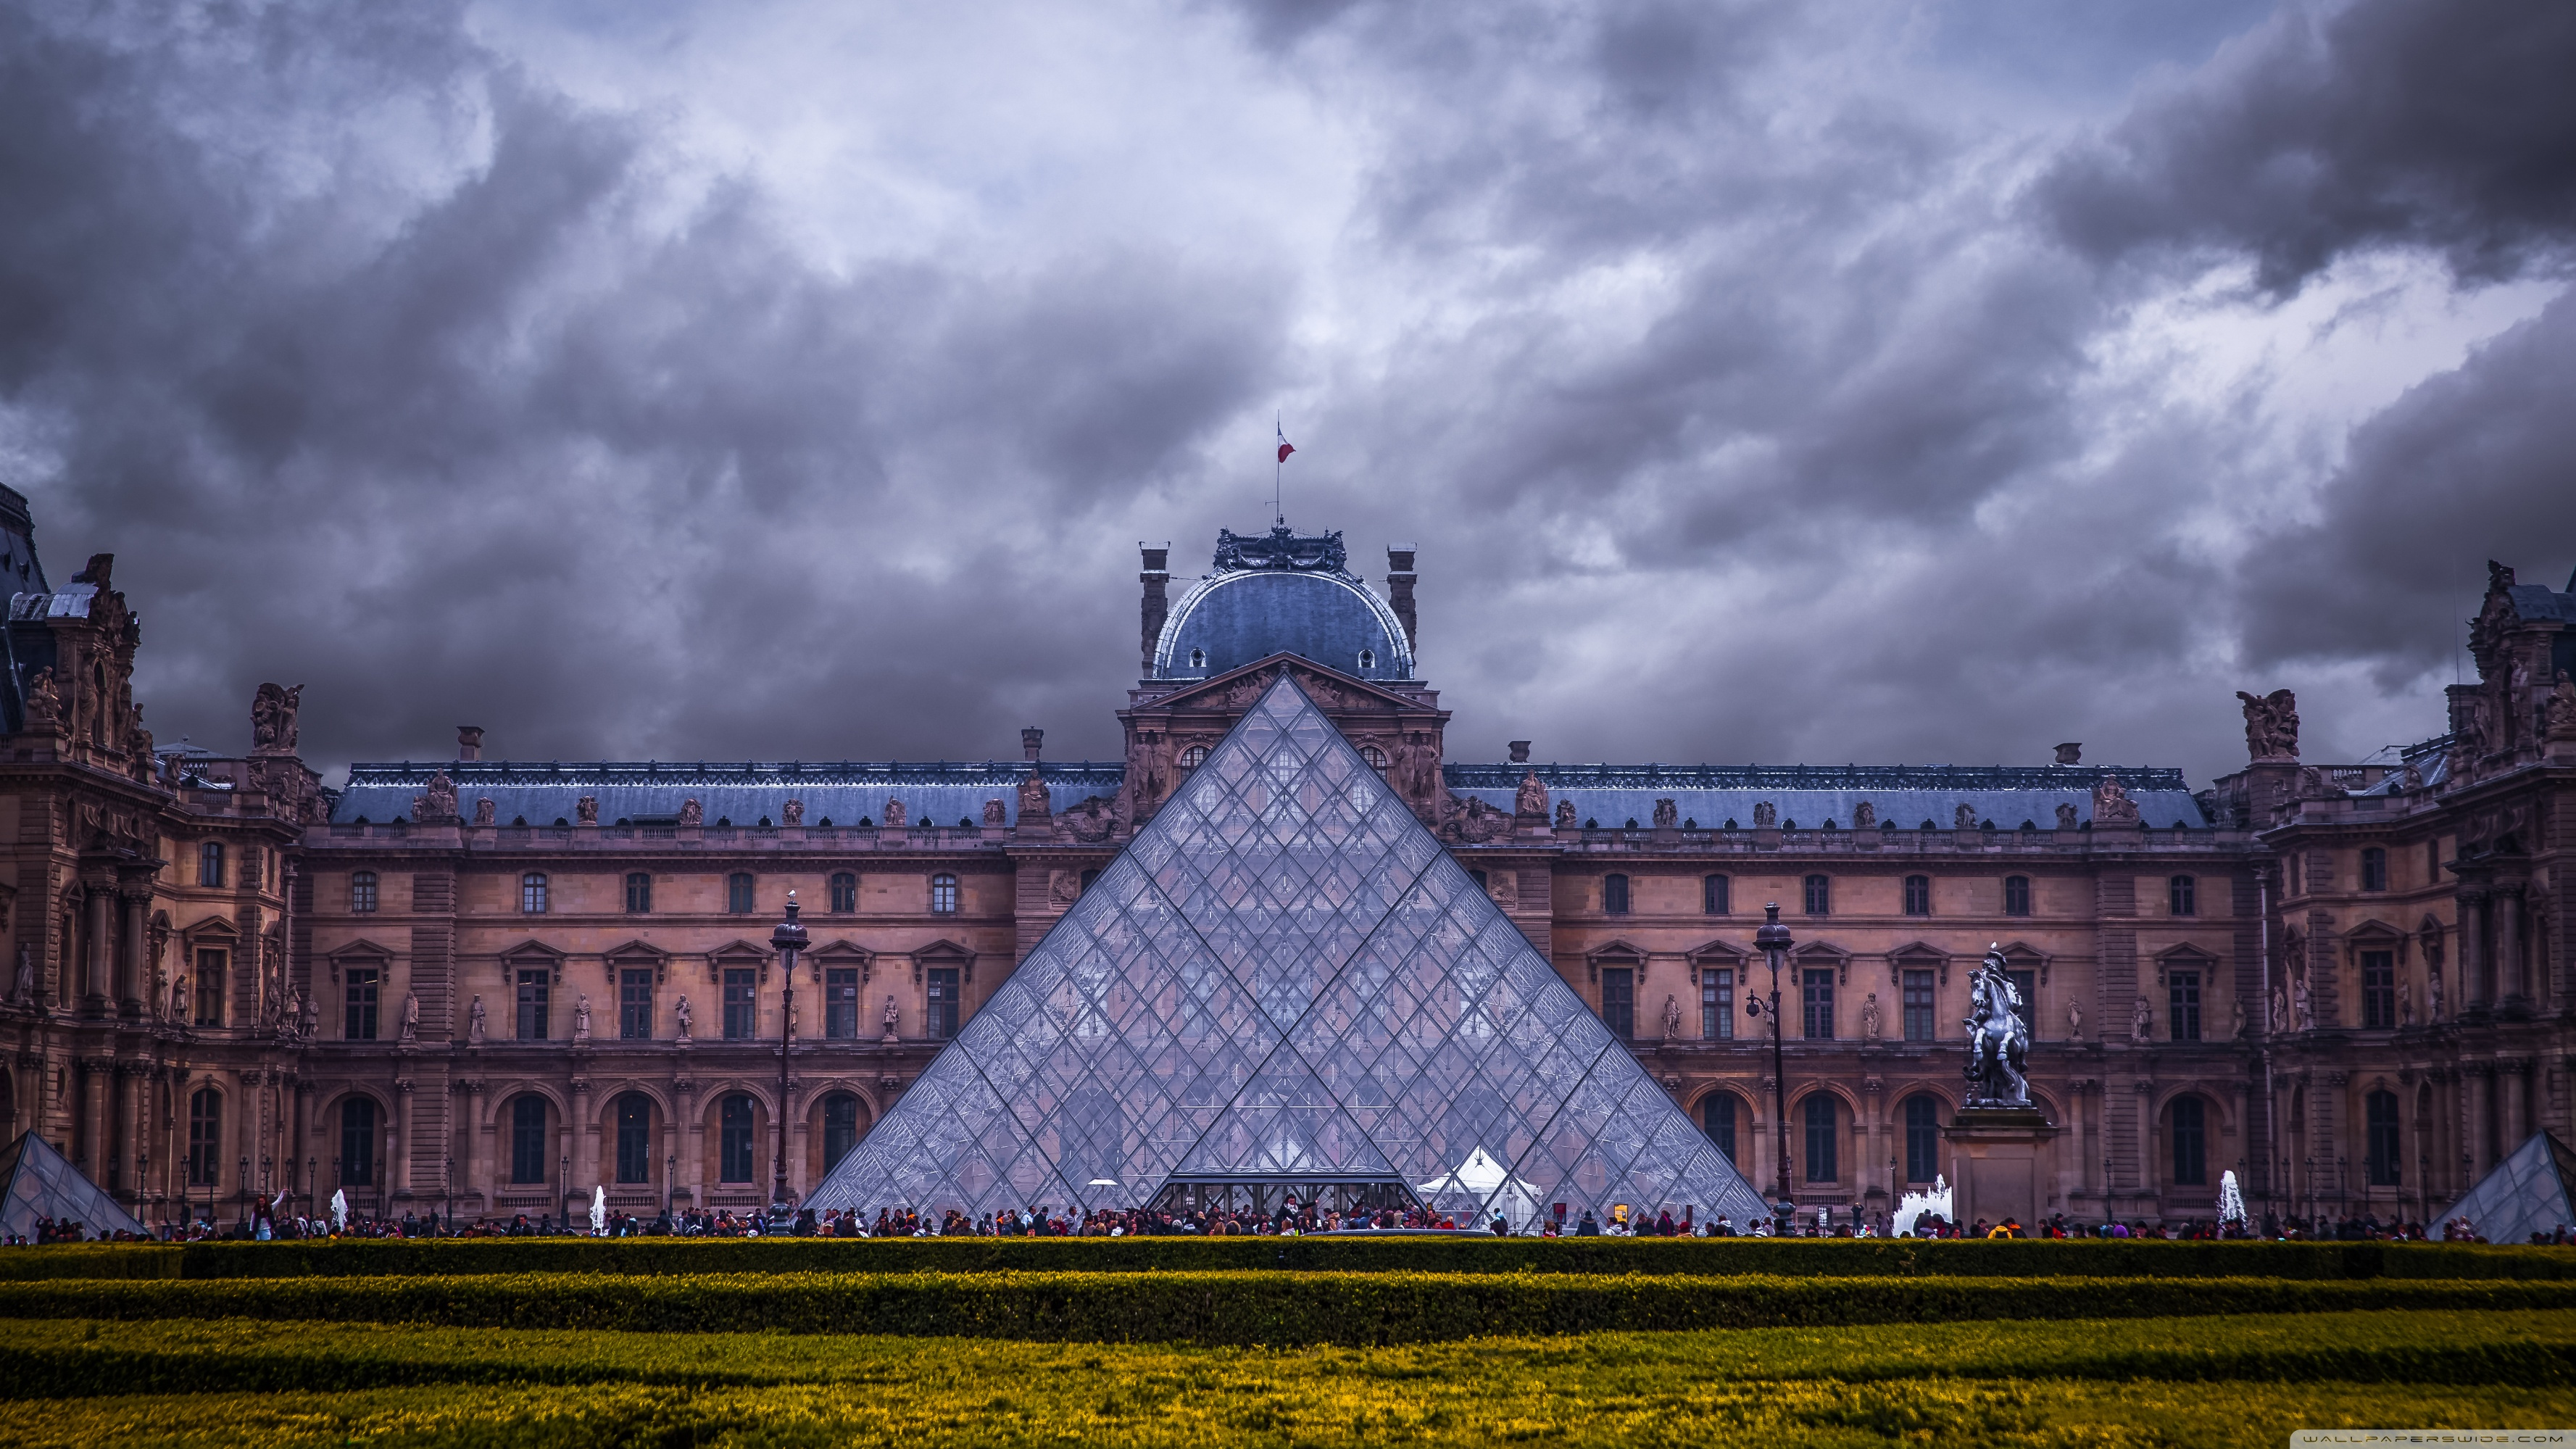 Louvre Museum Paris France 4K HD Desktop Wallpaper for 4K 3554x1999